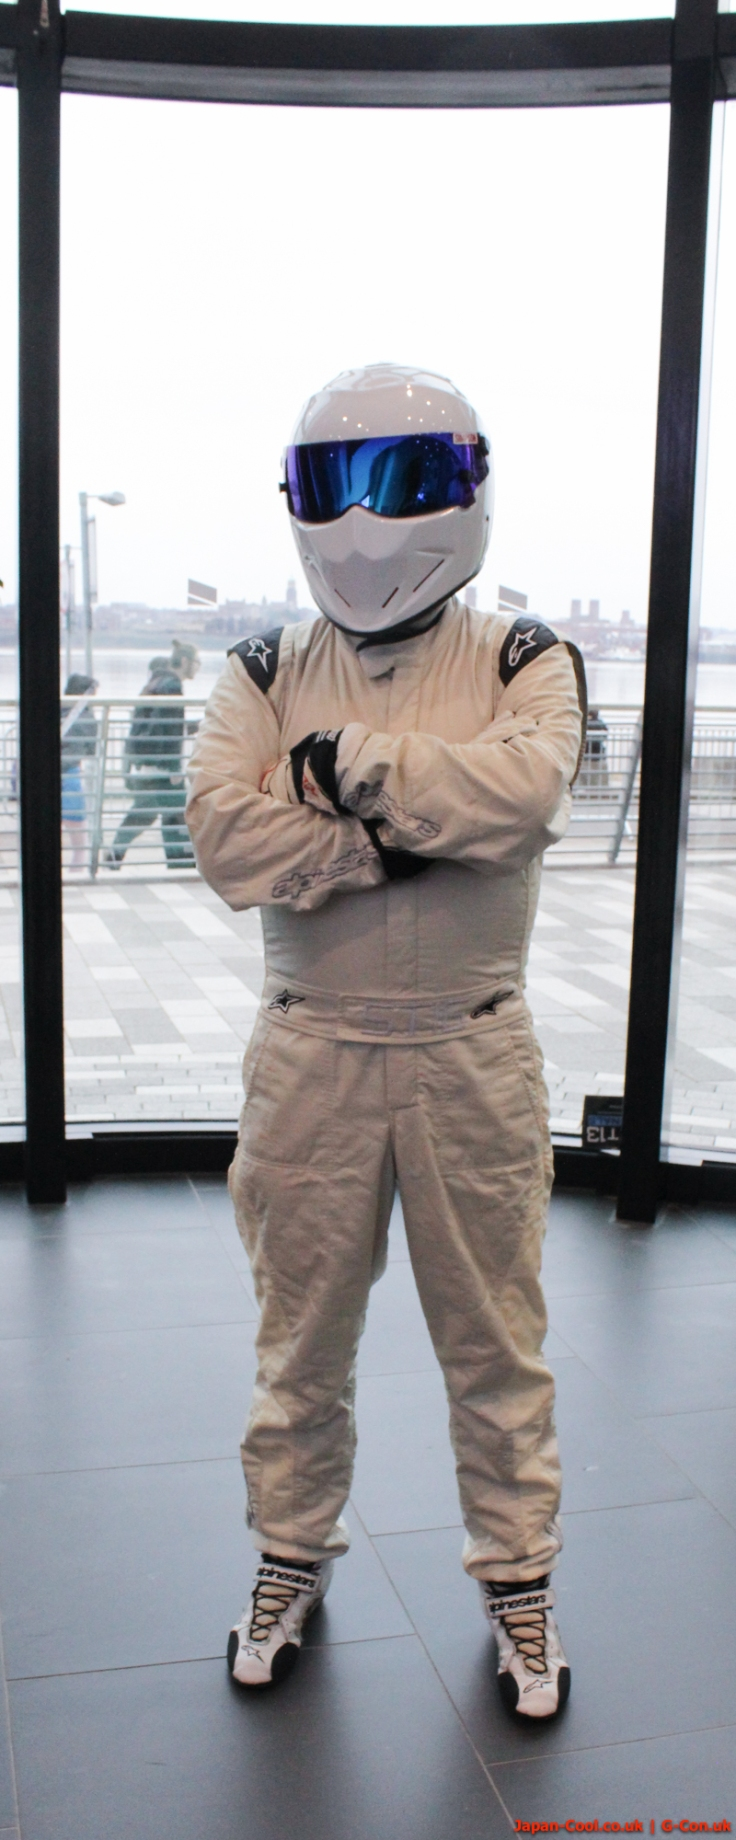 MCM-Liverpool-Comic-Con-March-2017-UK-Cosplay-Stig-Top-Gear